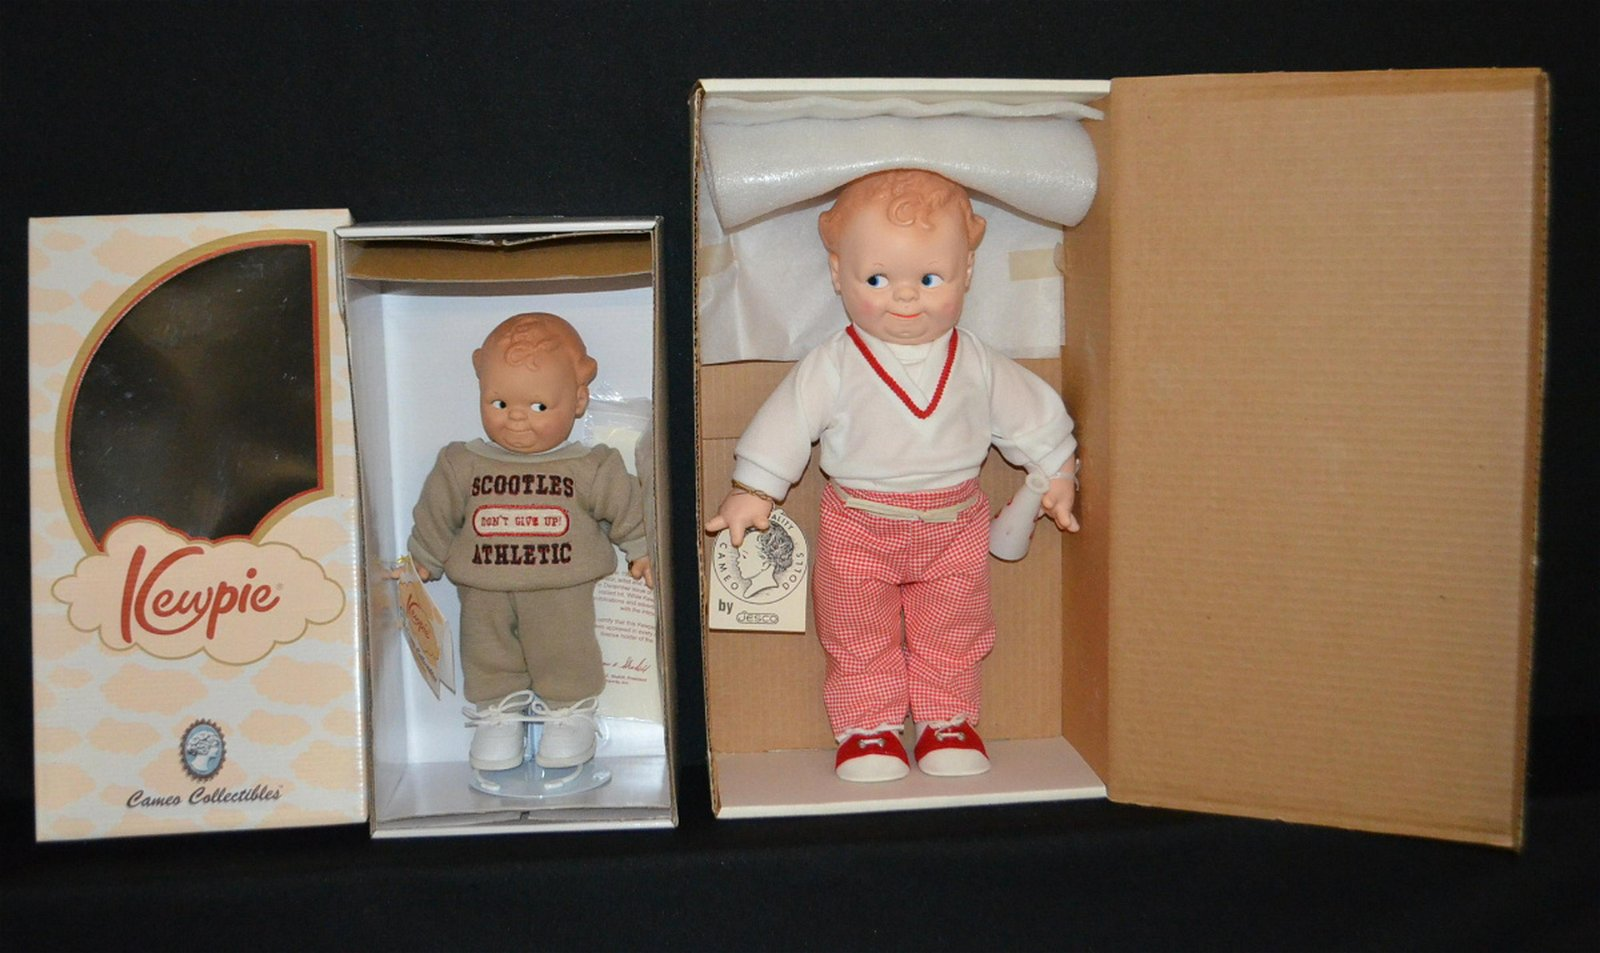 2 Scootles Dolls in Original Boxes